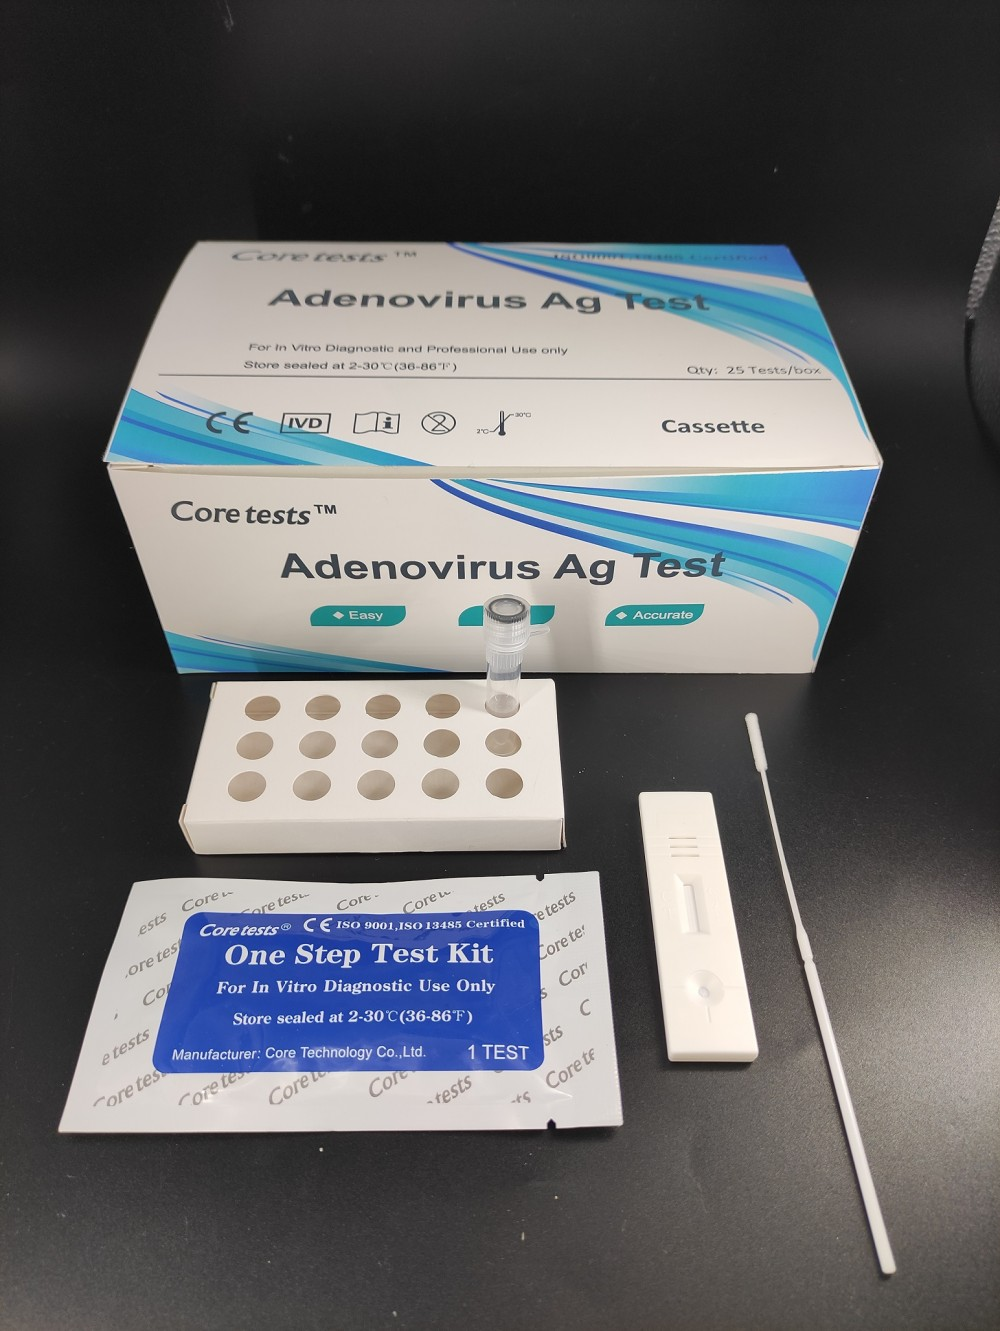 Adenoviruses Ag Test